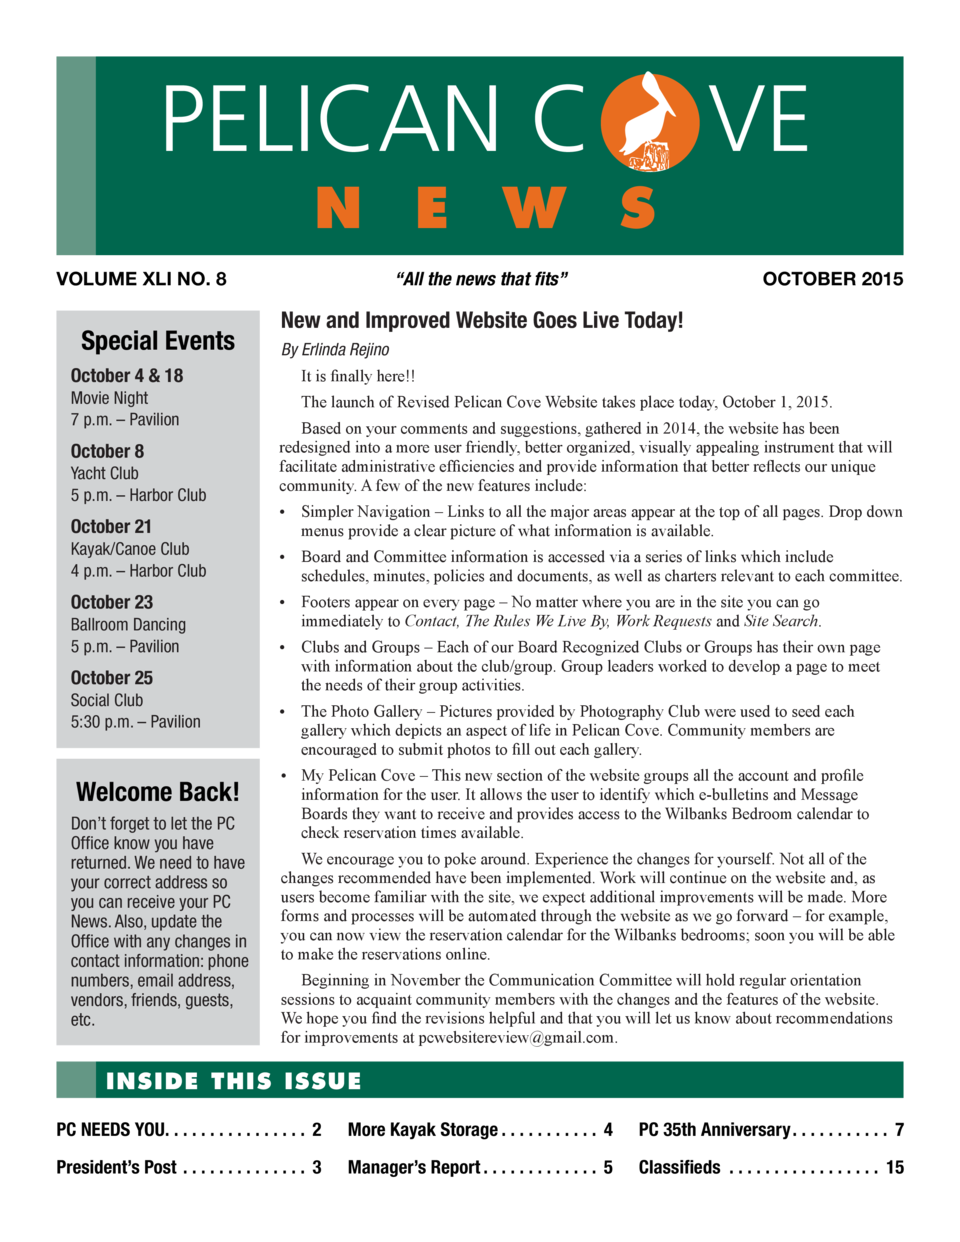 PELICAN C  n e w s  VOLUME XLI NO. 8  Special Events  VE OCTOBER 2015     All the news that fits     New and Improved Webs...